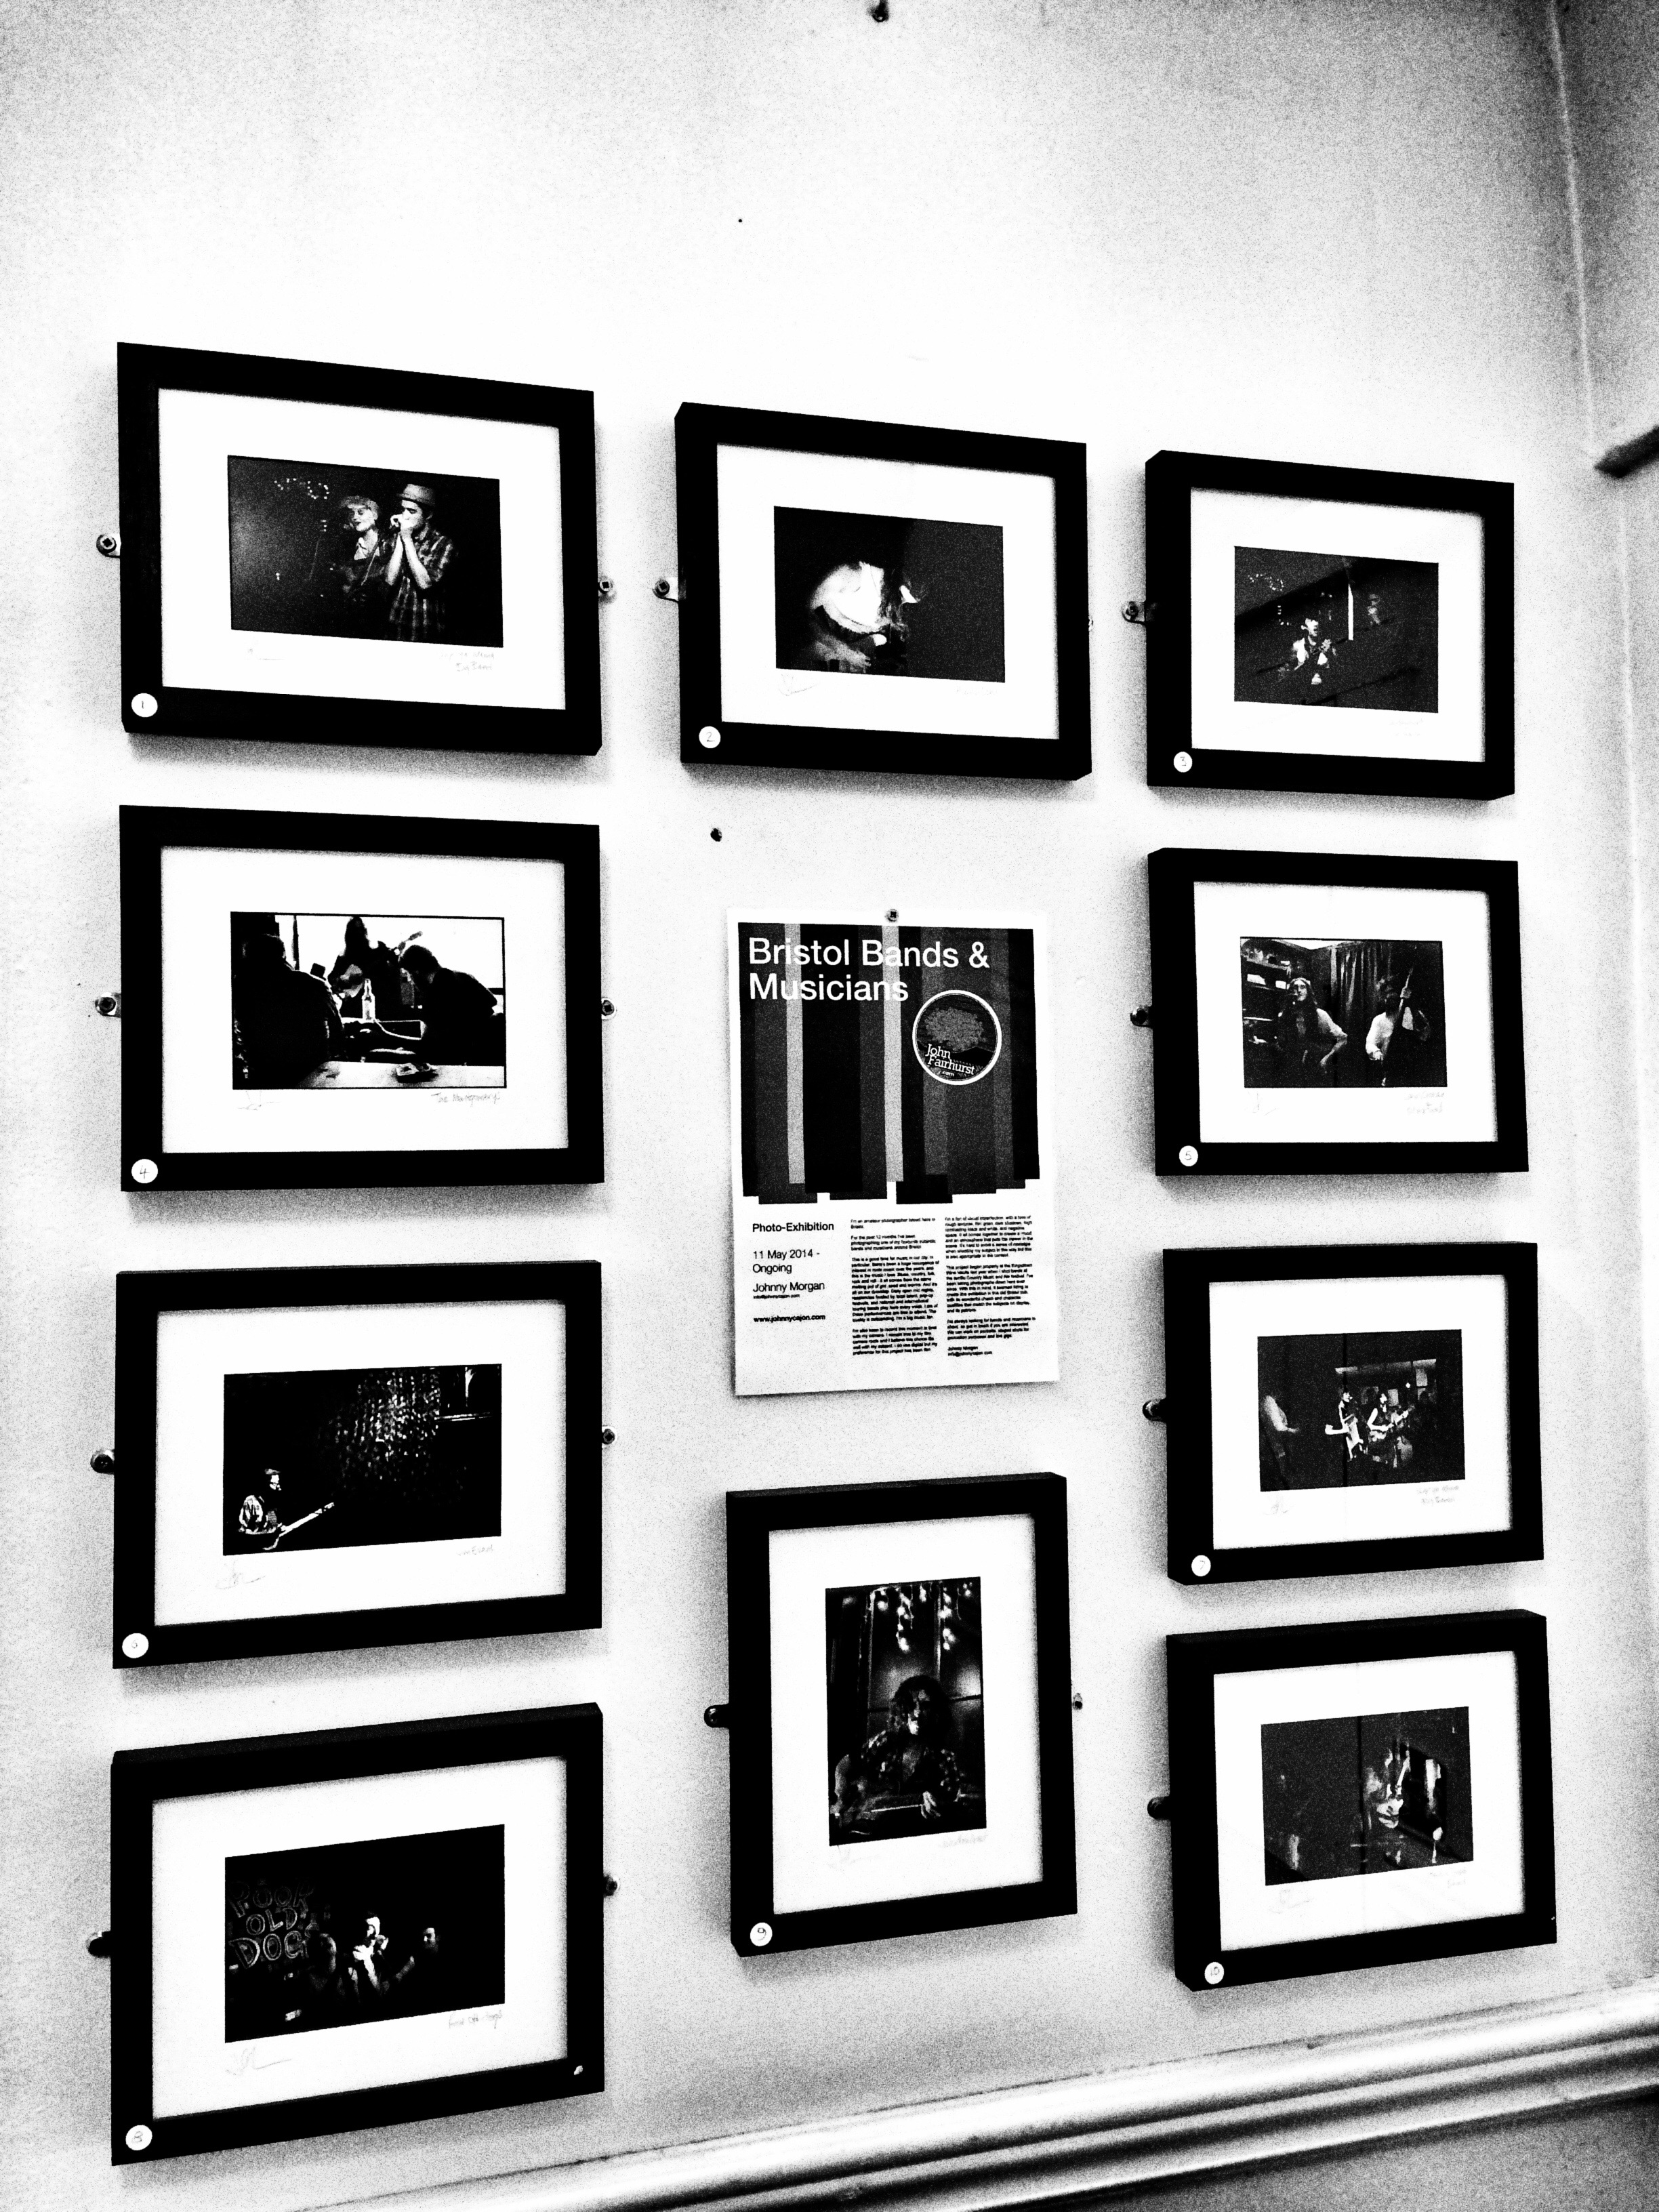 One of my recent photo exhibitions on the Bristol music scene